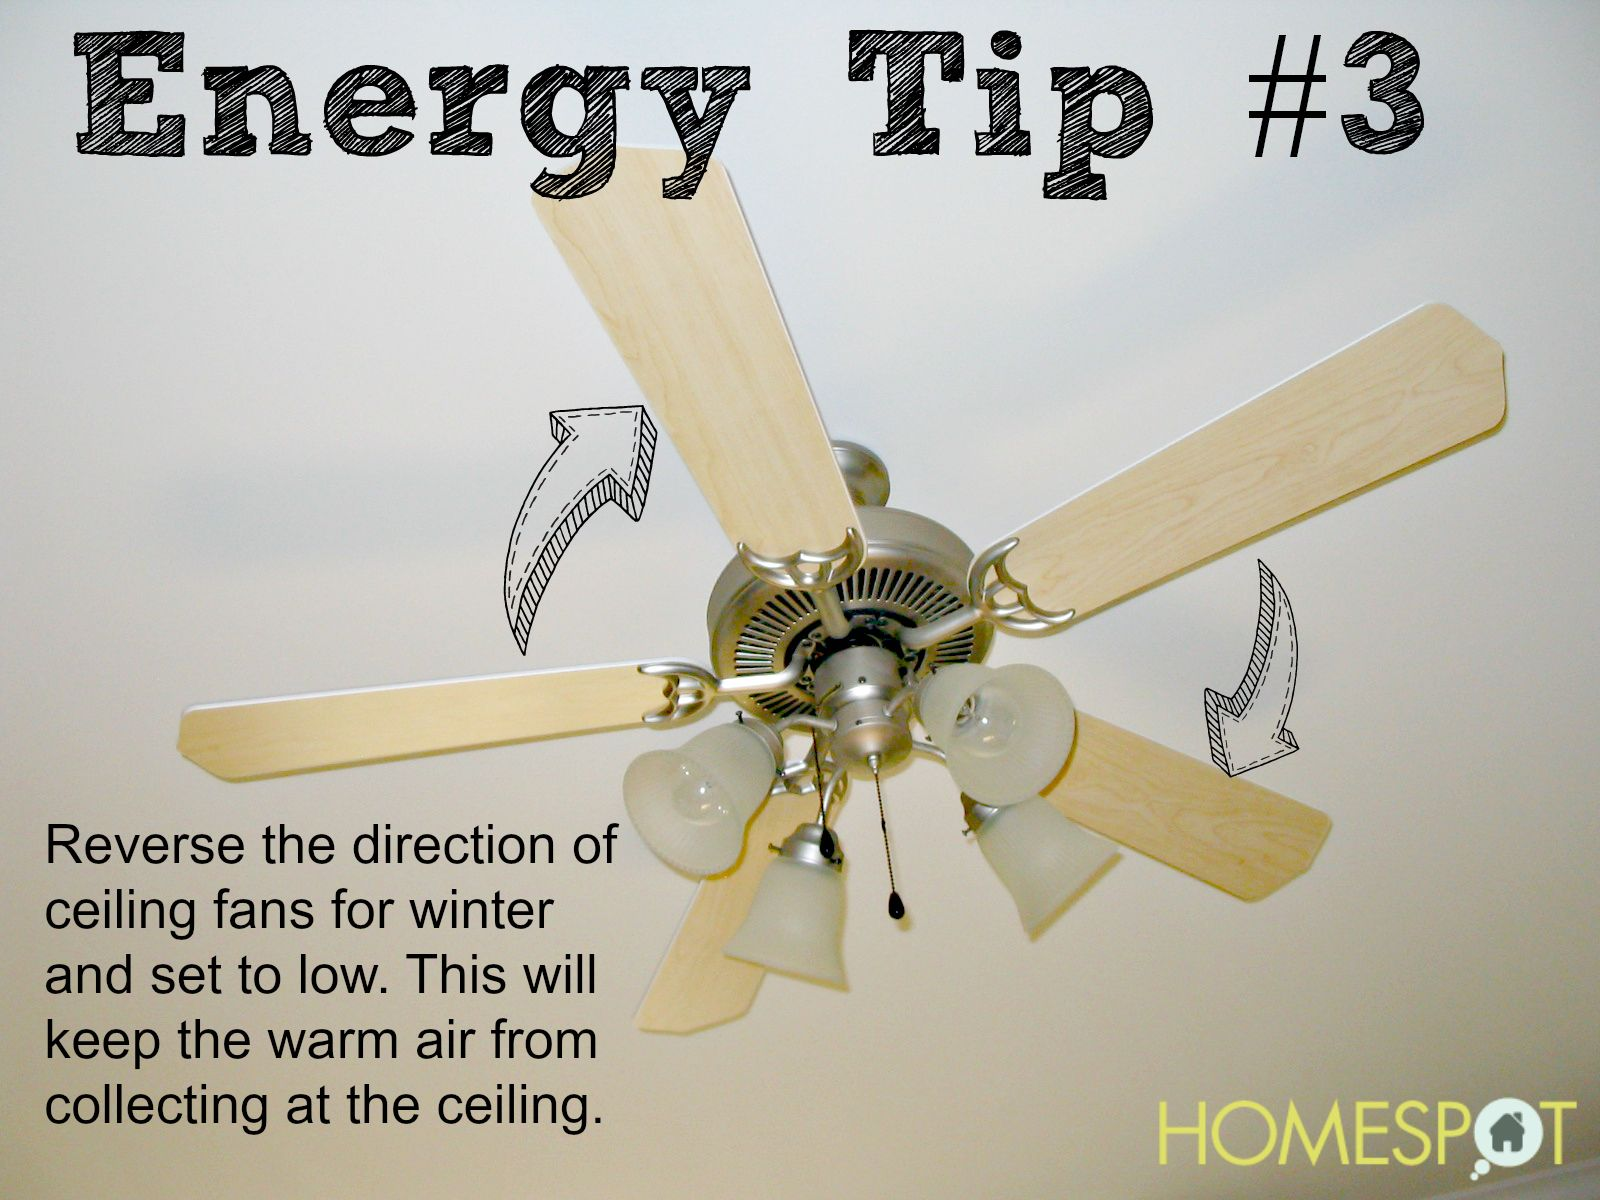 Reverse Ceiling Fans And Use The Lowest